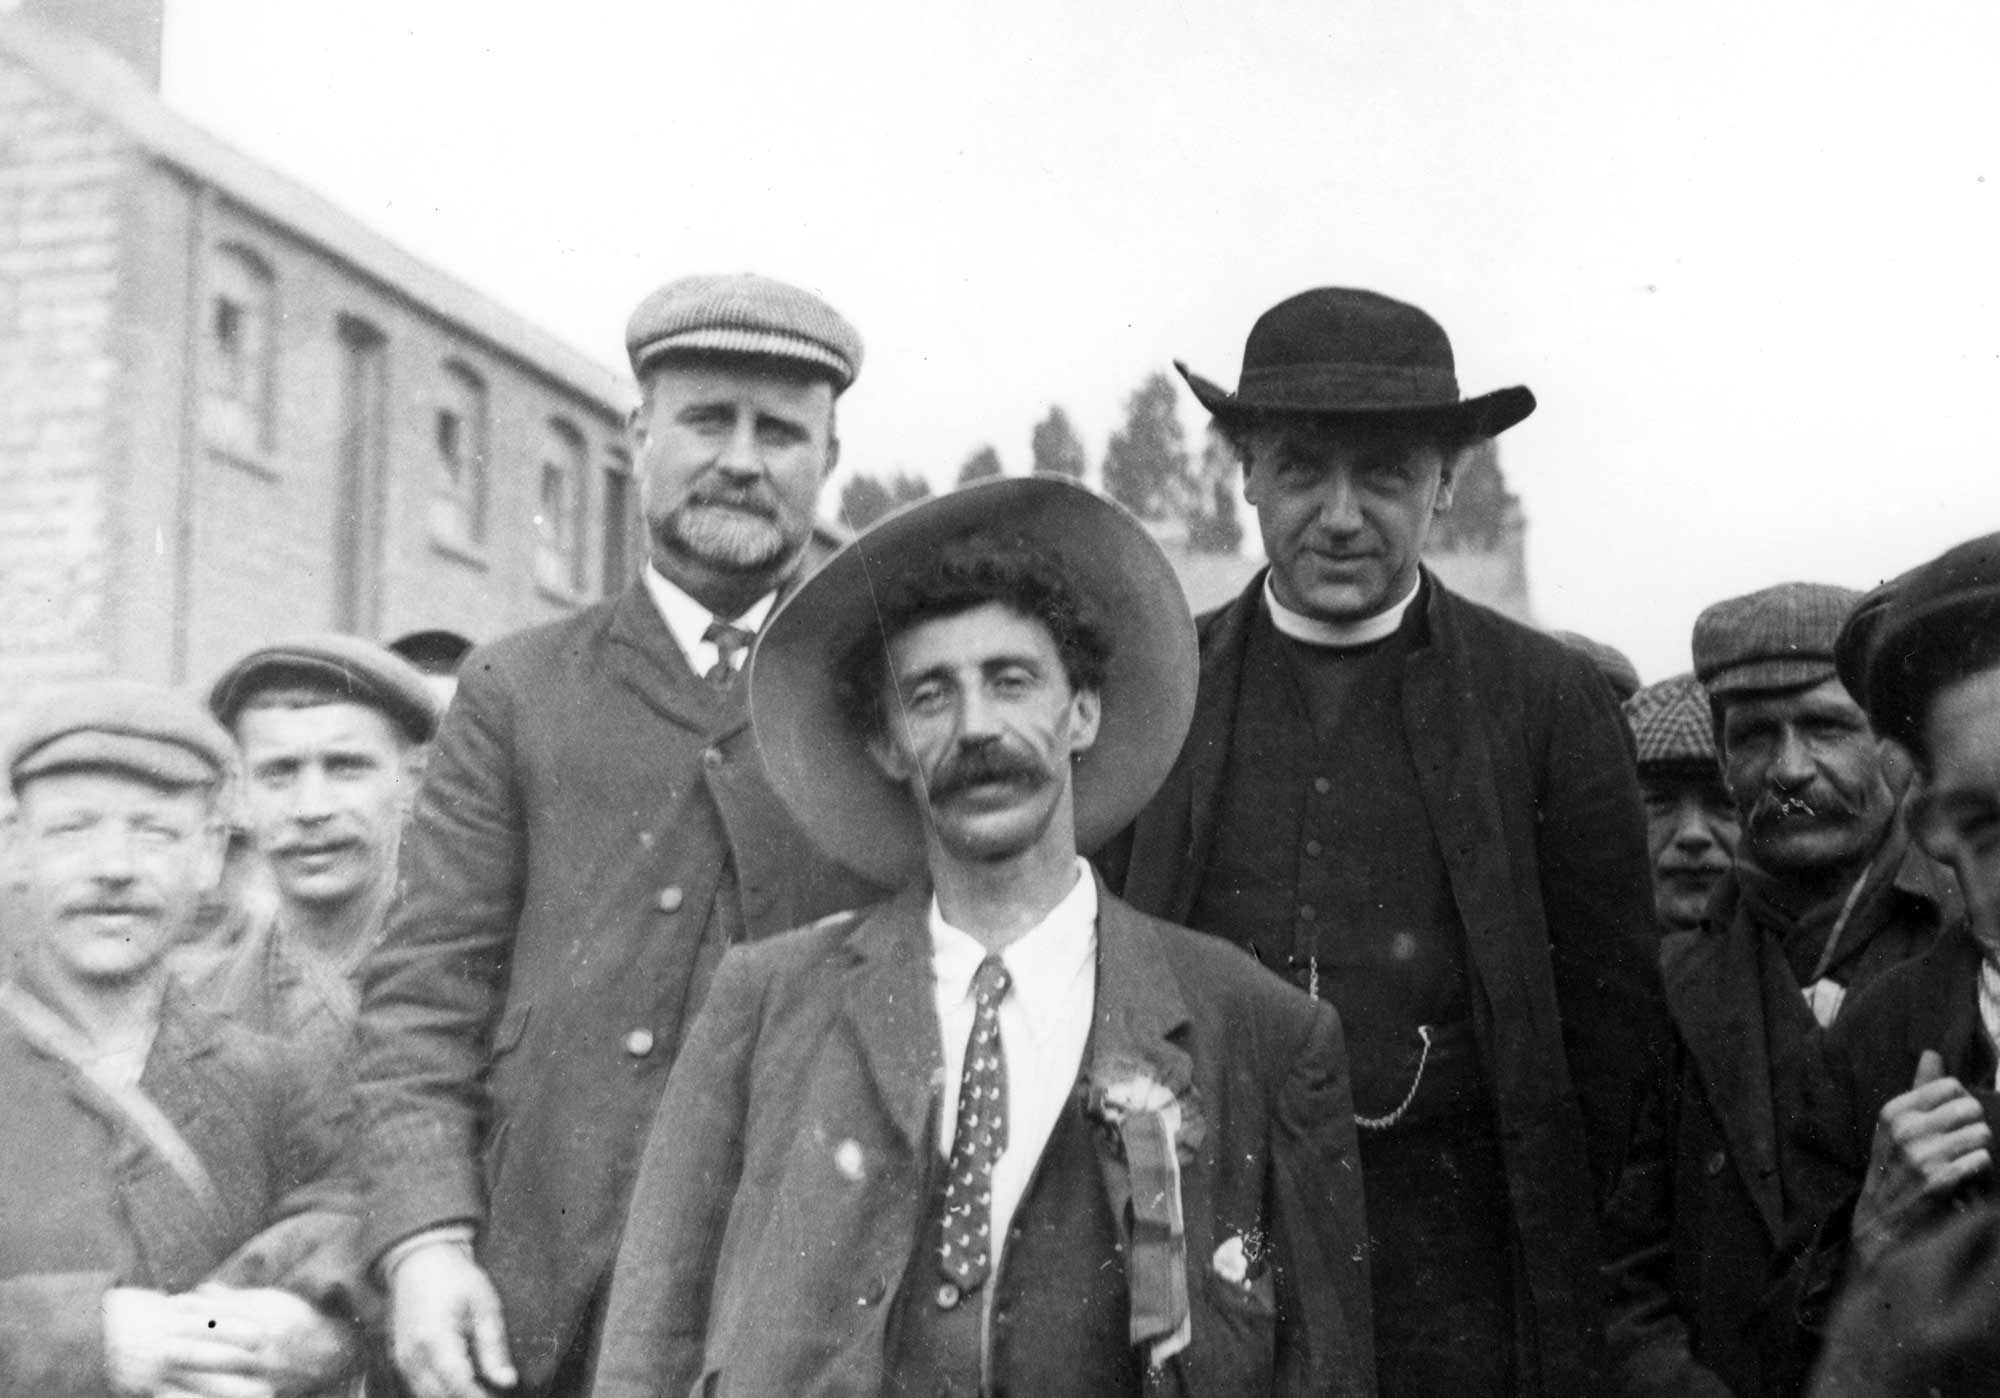 Rev. F.L. Donaldson (right centre) with the other leaders of the march of the unemployed, 1905 - Leicester and Leicestershire Record Office